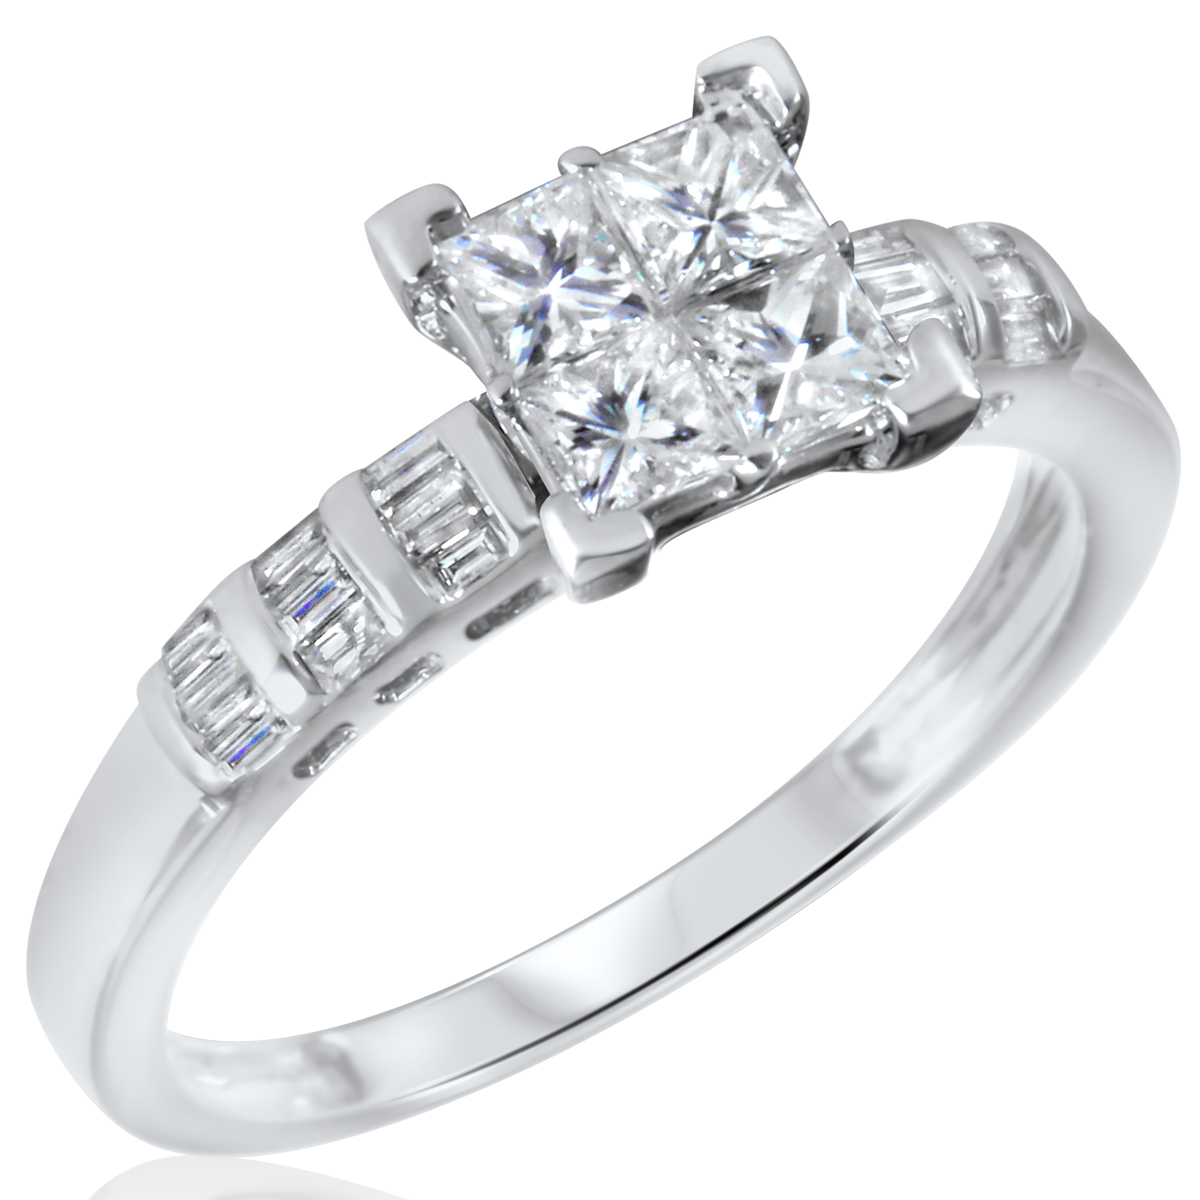 1 CT TW Diamond Womens Bridal Wedding Ring Set 10K White Gold